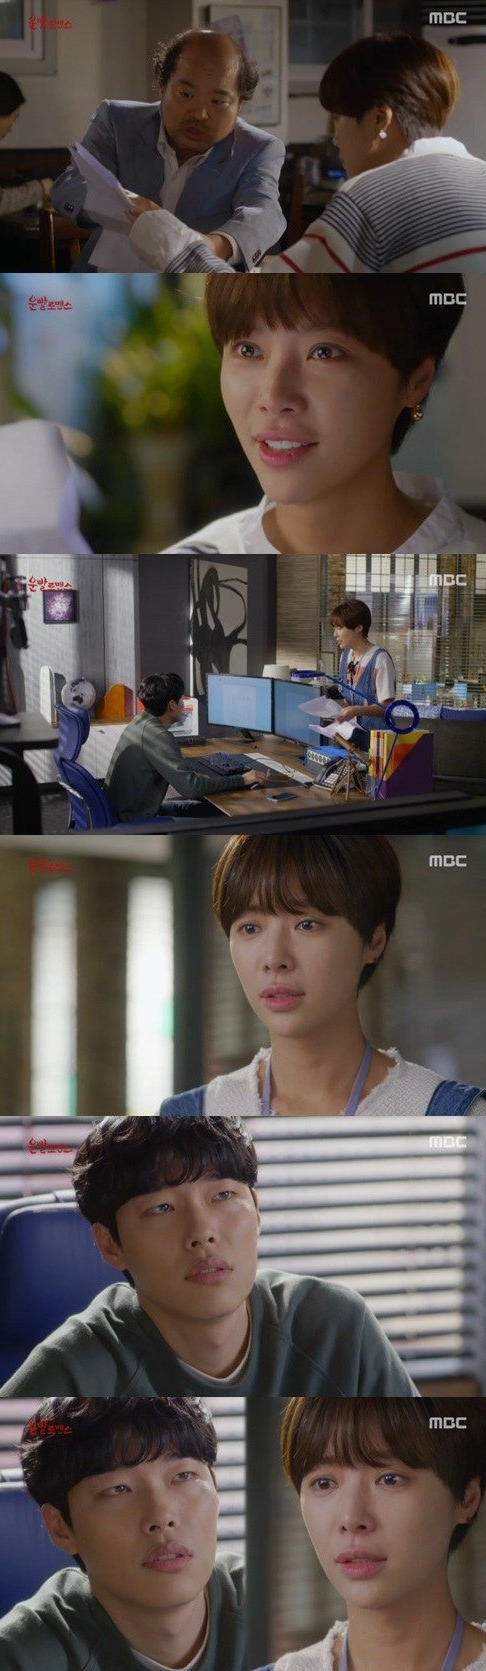 Added episode 3 captures for the Korean drama 'Lucky Romance'.